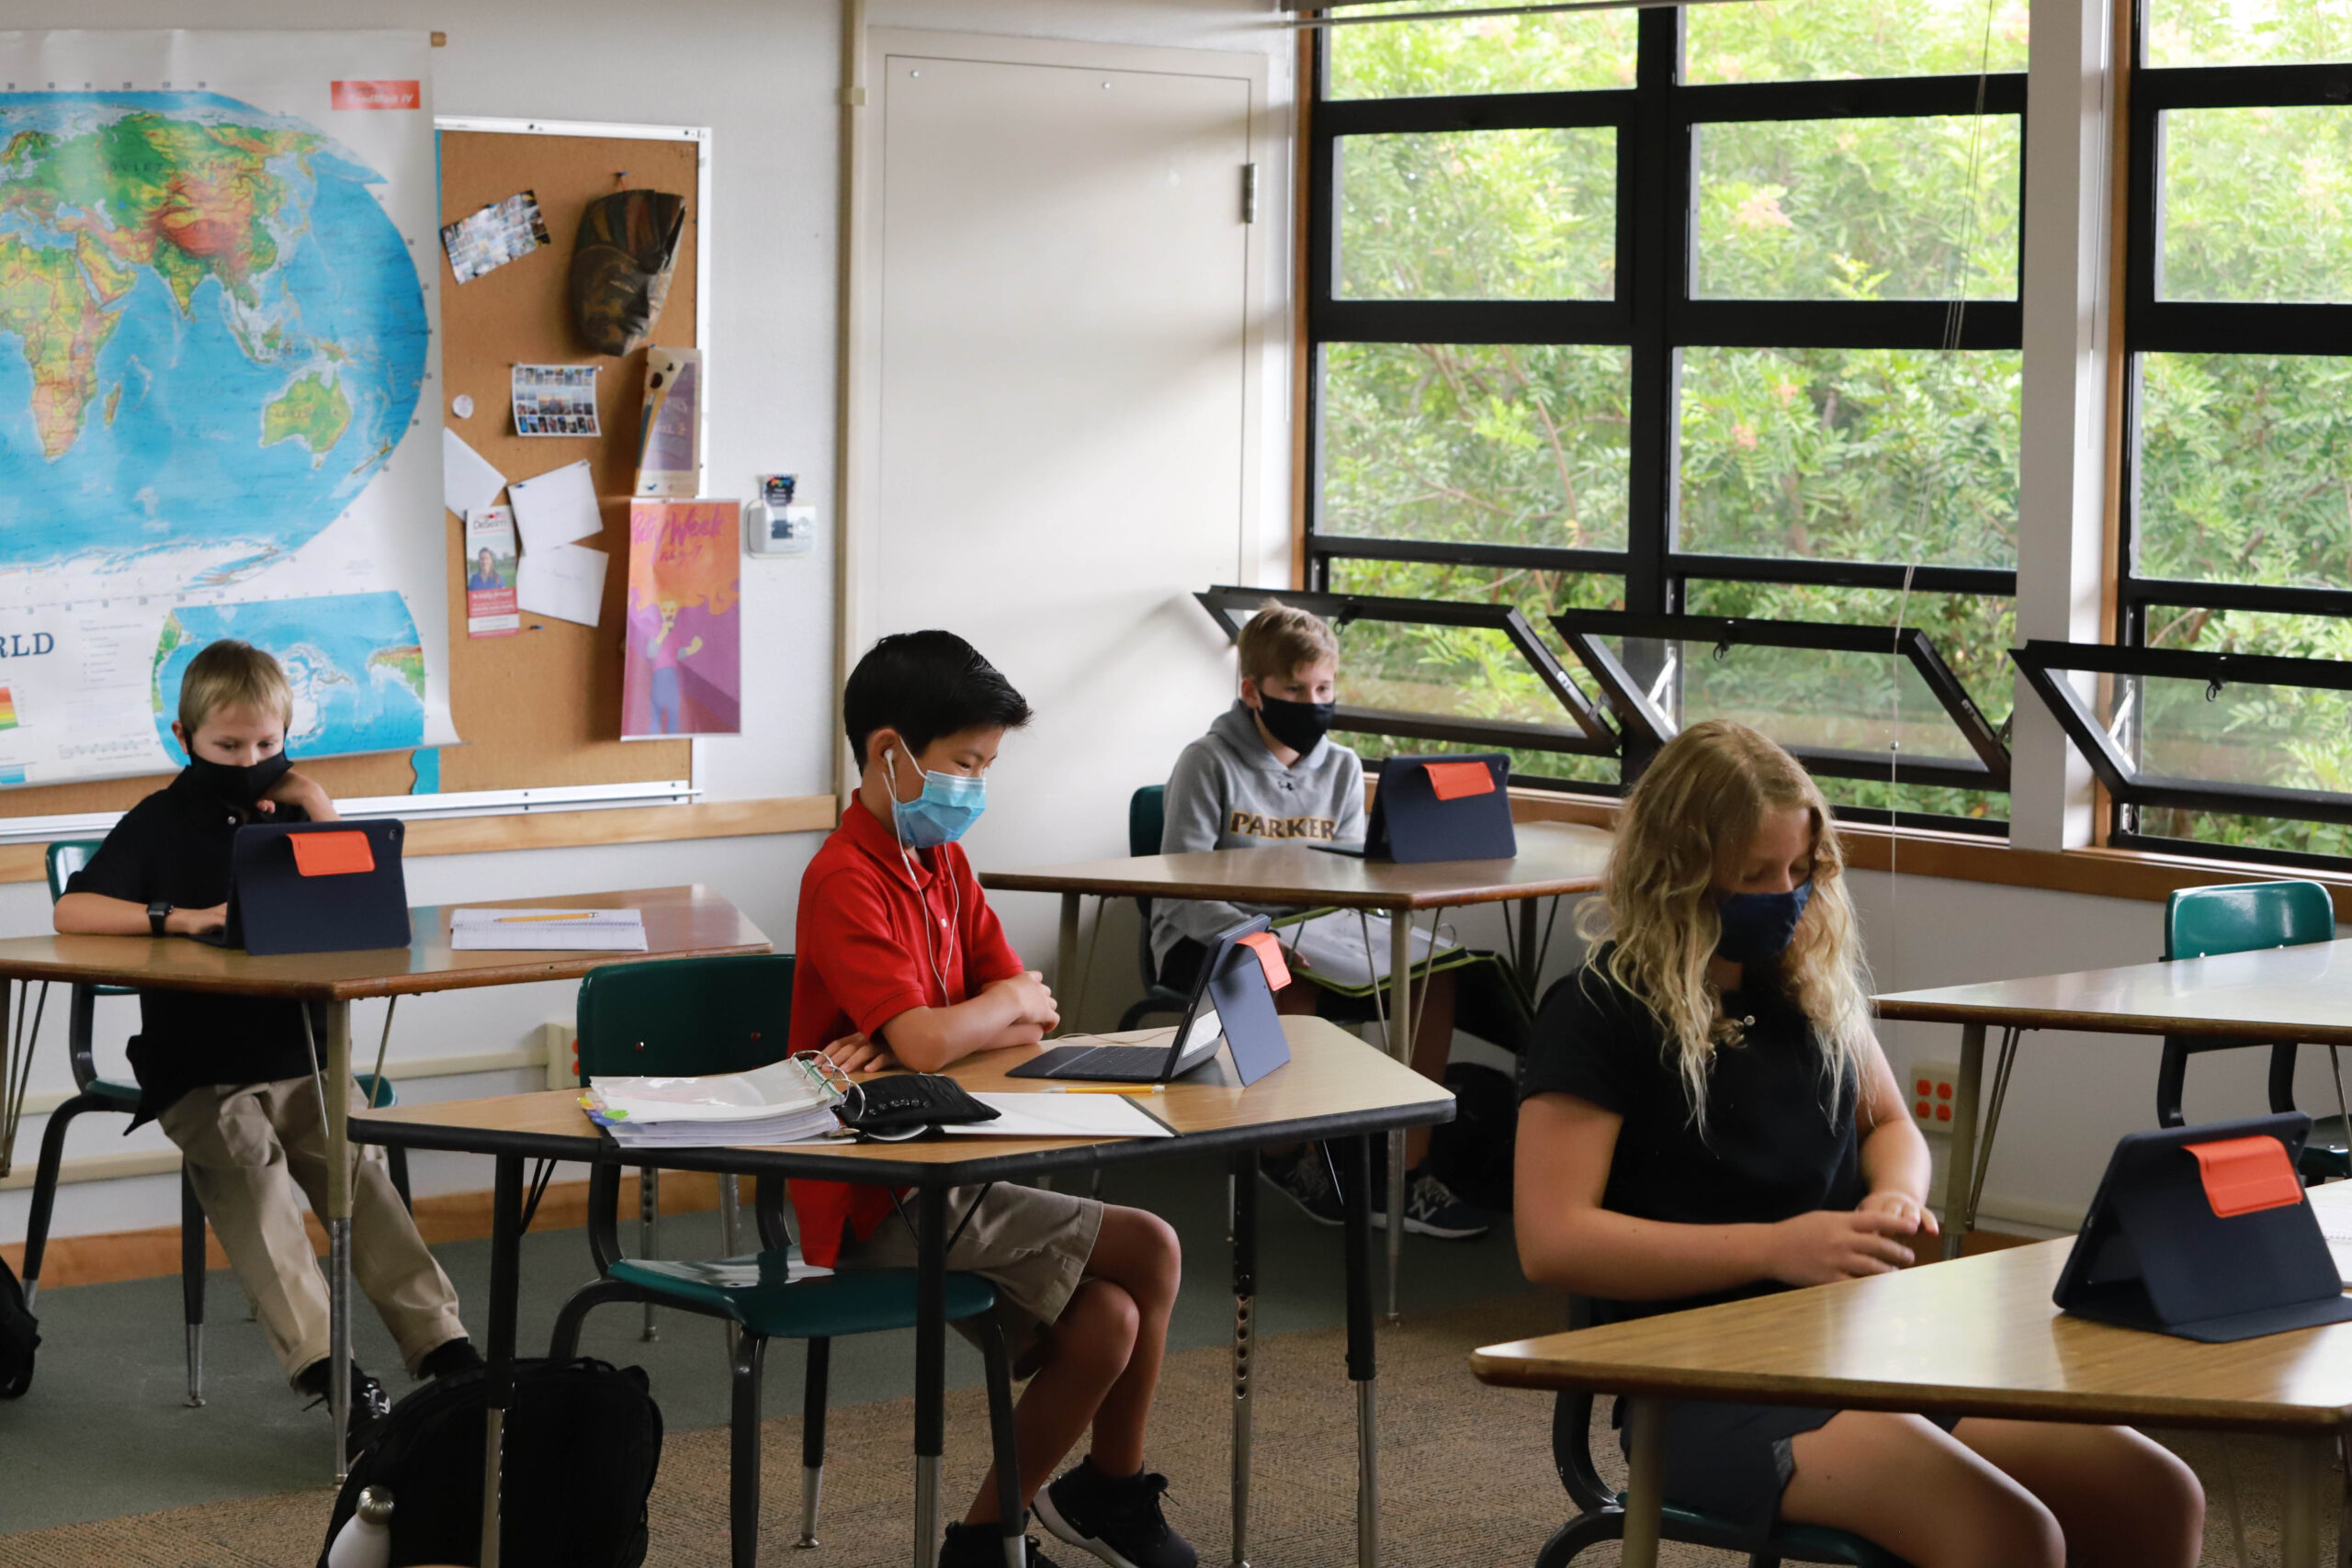 In the News: Parker welcomes students back to classroom in flexible hybrid model